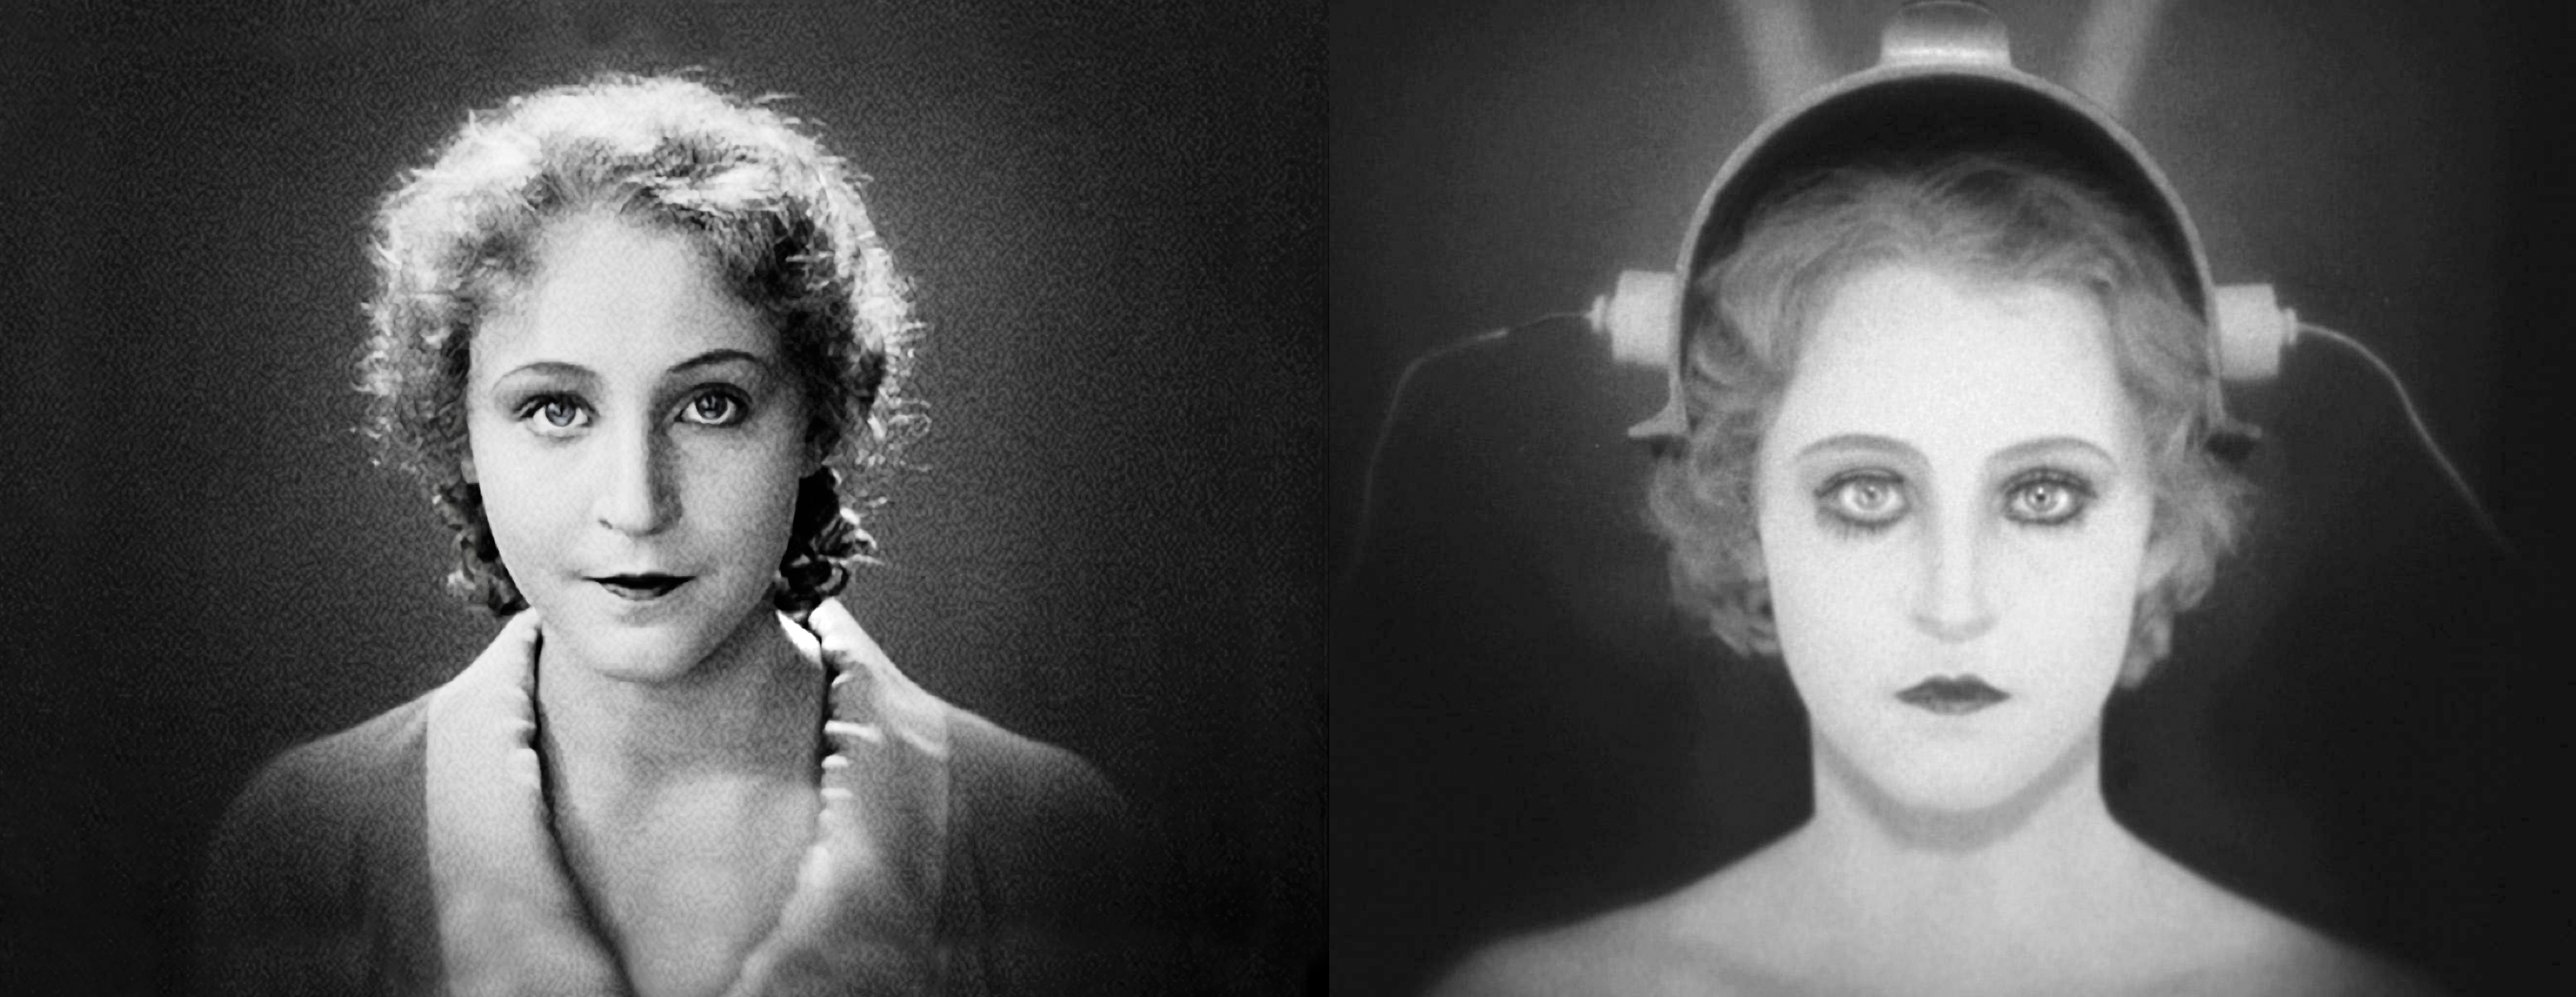 film analysis metropolis women The presence of women in the film seems a  dilapidated village than the wrecked metropolis of the  the full monty is a prime example of another once.